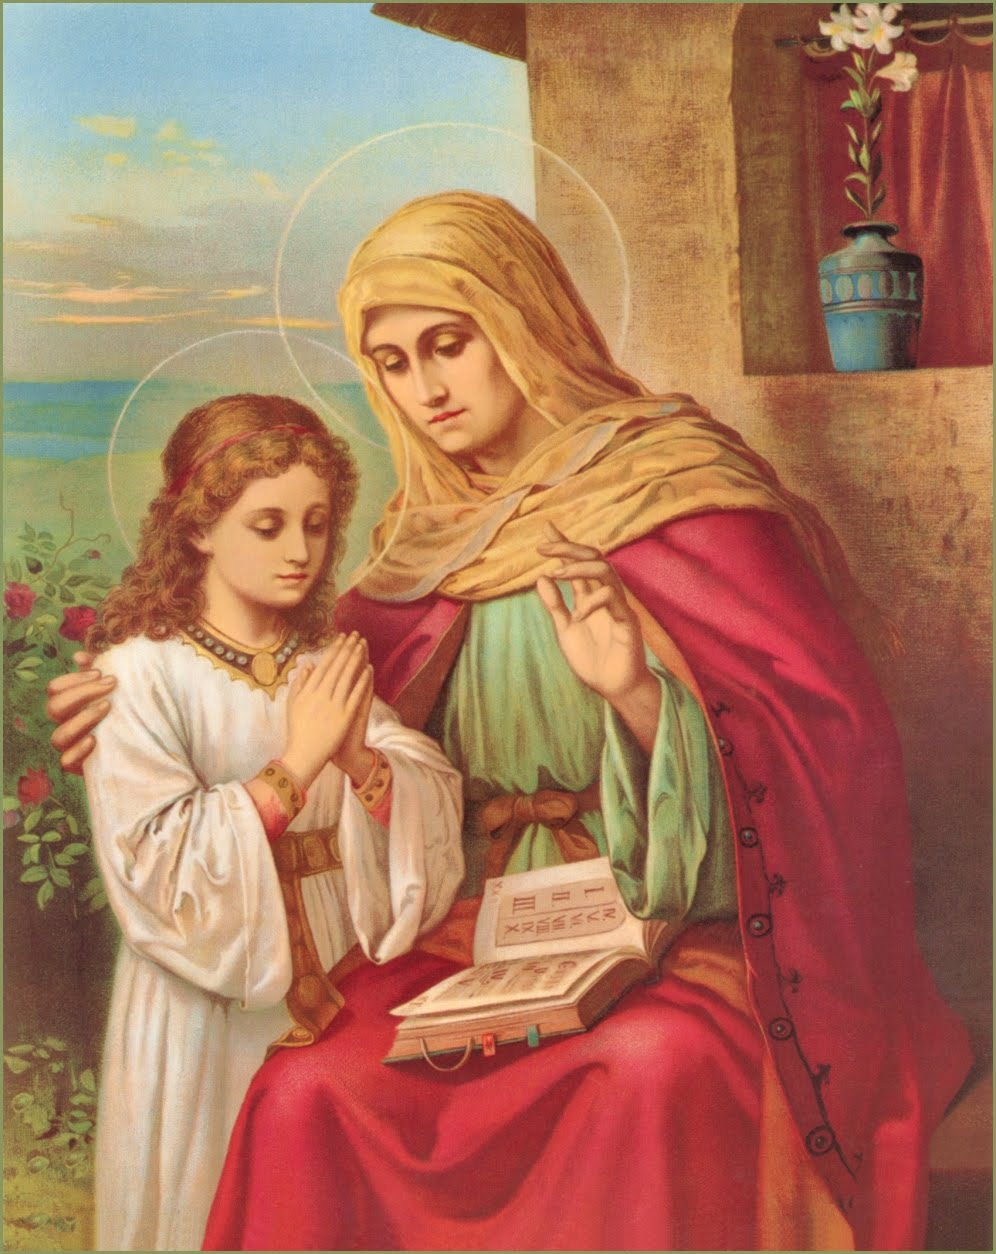 Blessed Virgin Mary and St. Anne, grandmother of Christ, pray for us!